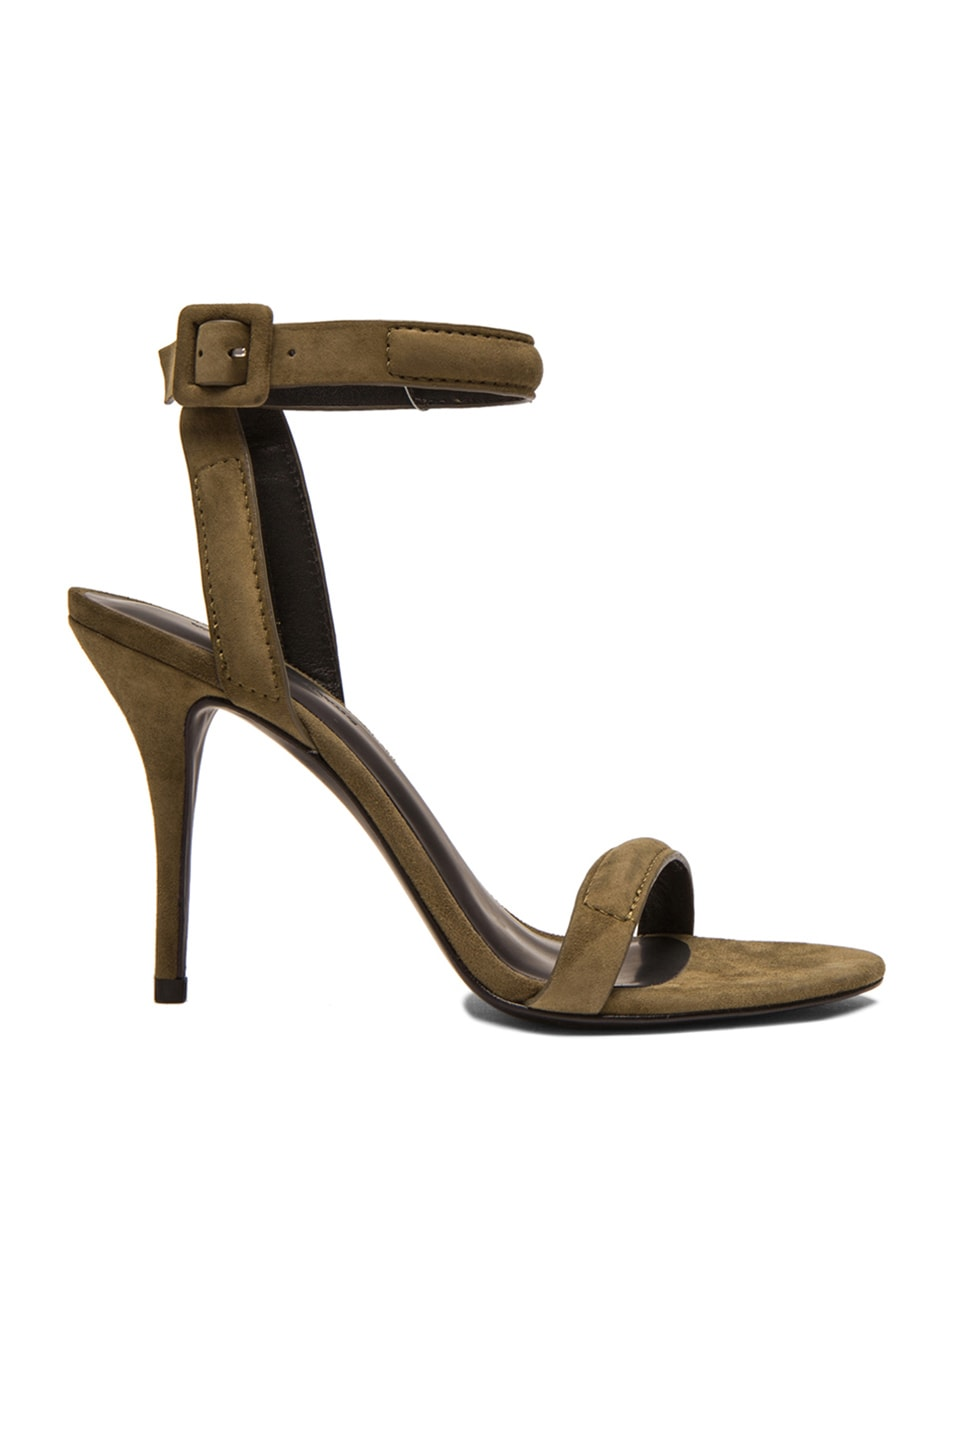 Image 1 of Alexander Wang Antonia Suede Ankle Strap Sandals in Camouflage